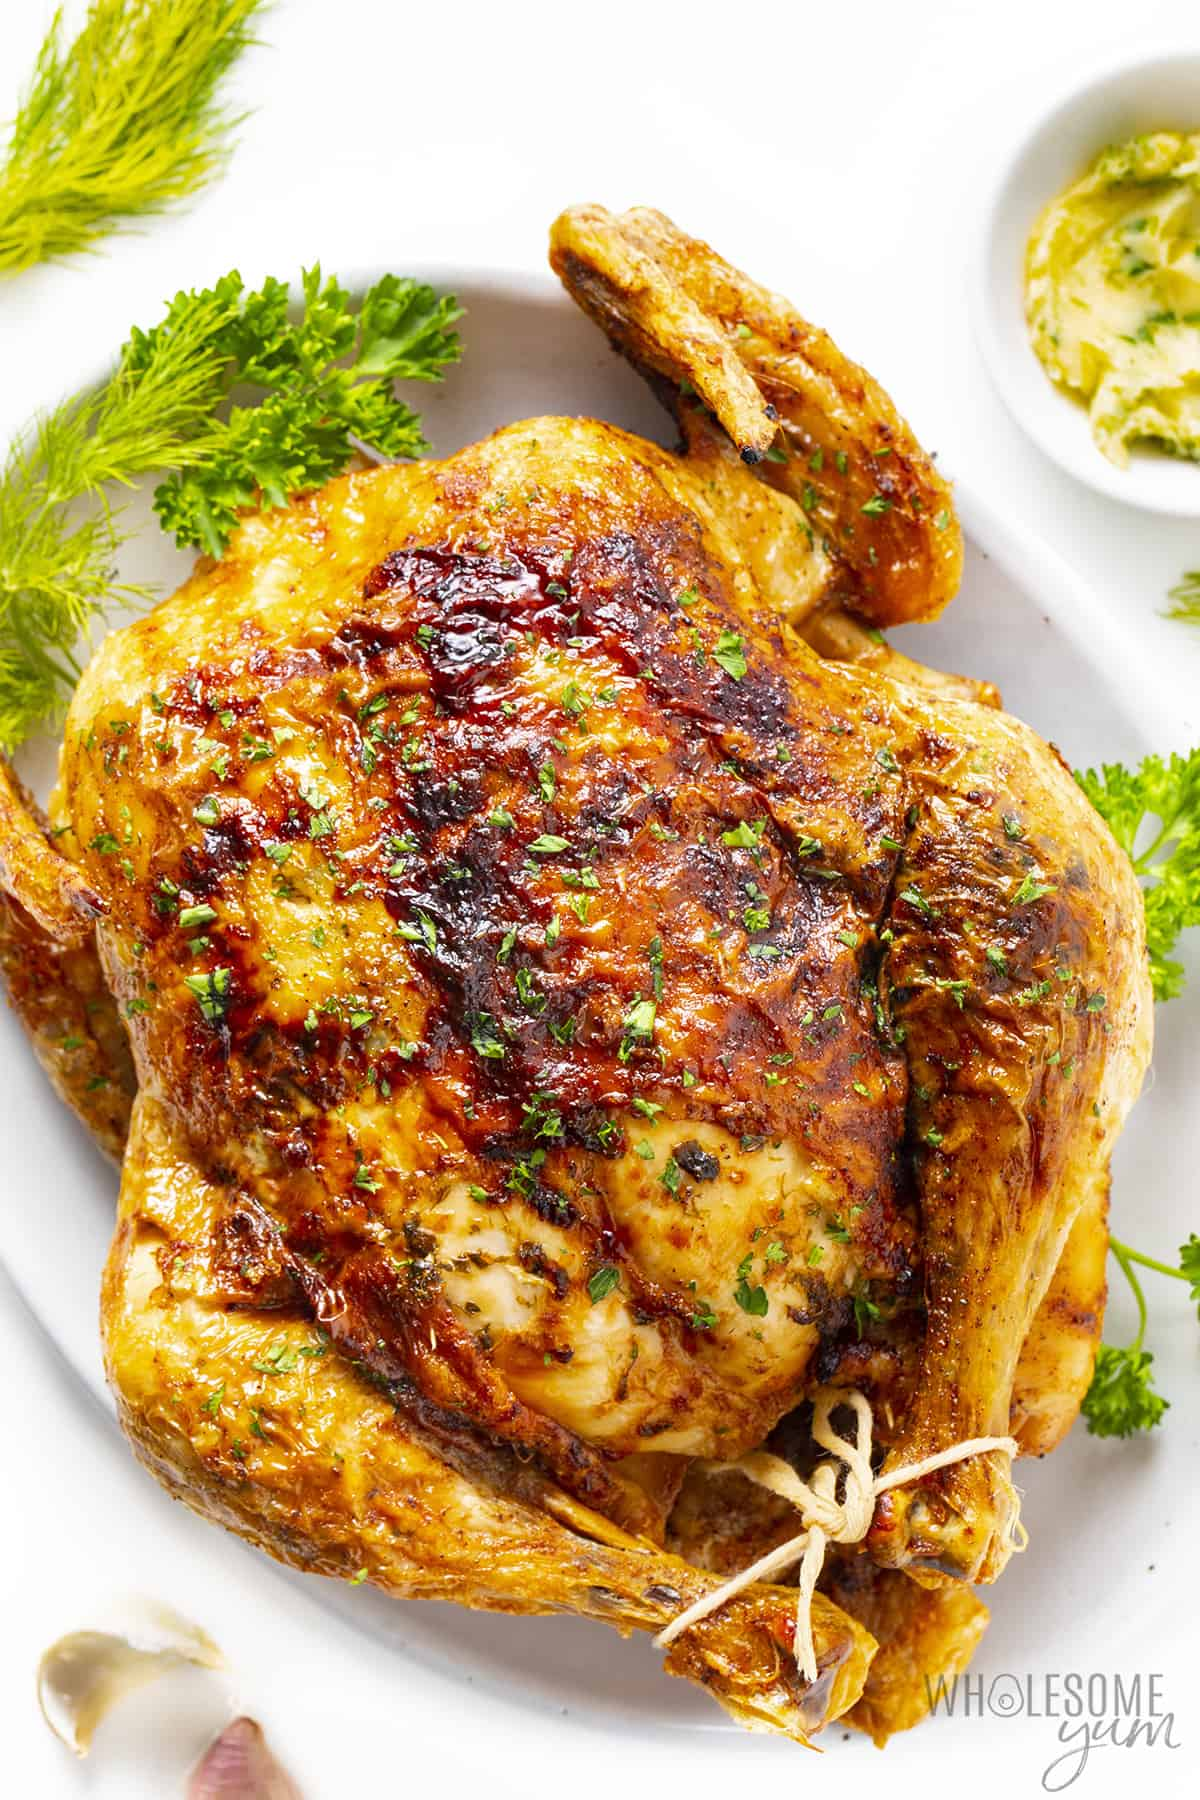 Cooked air fryer chicken on a platter